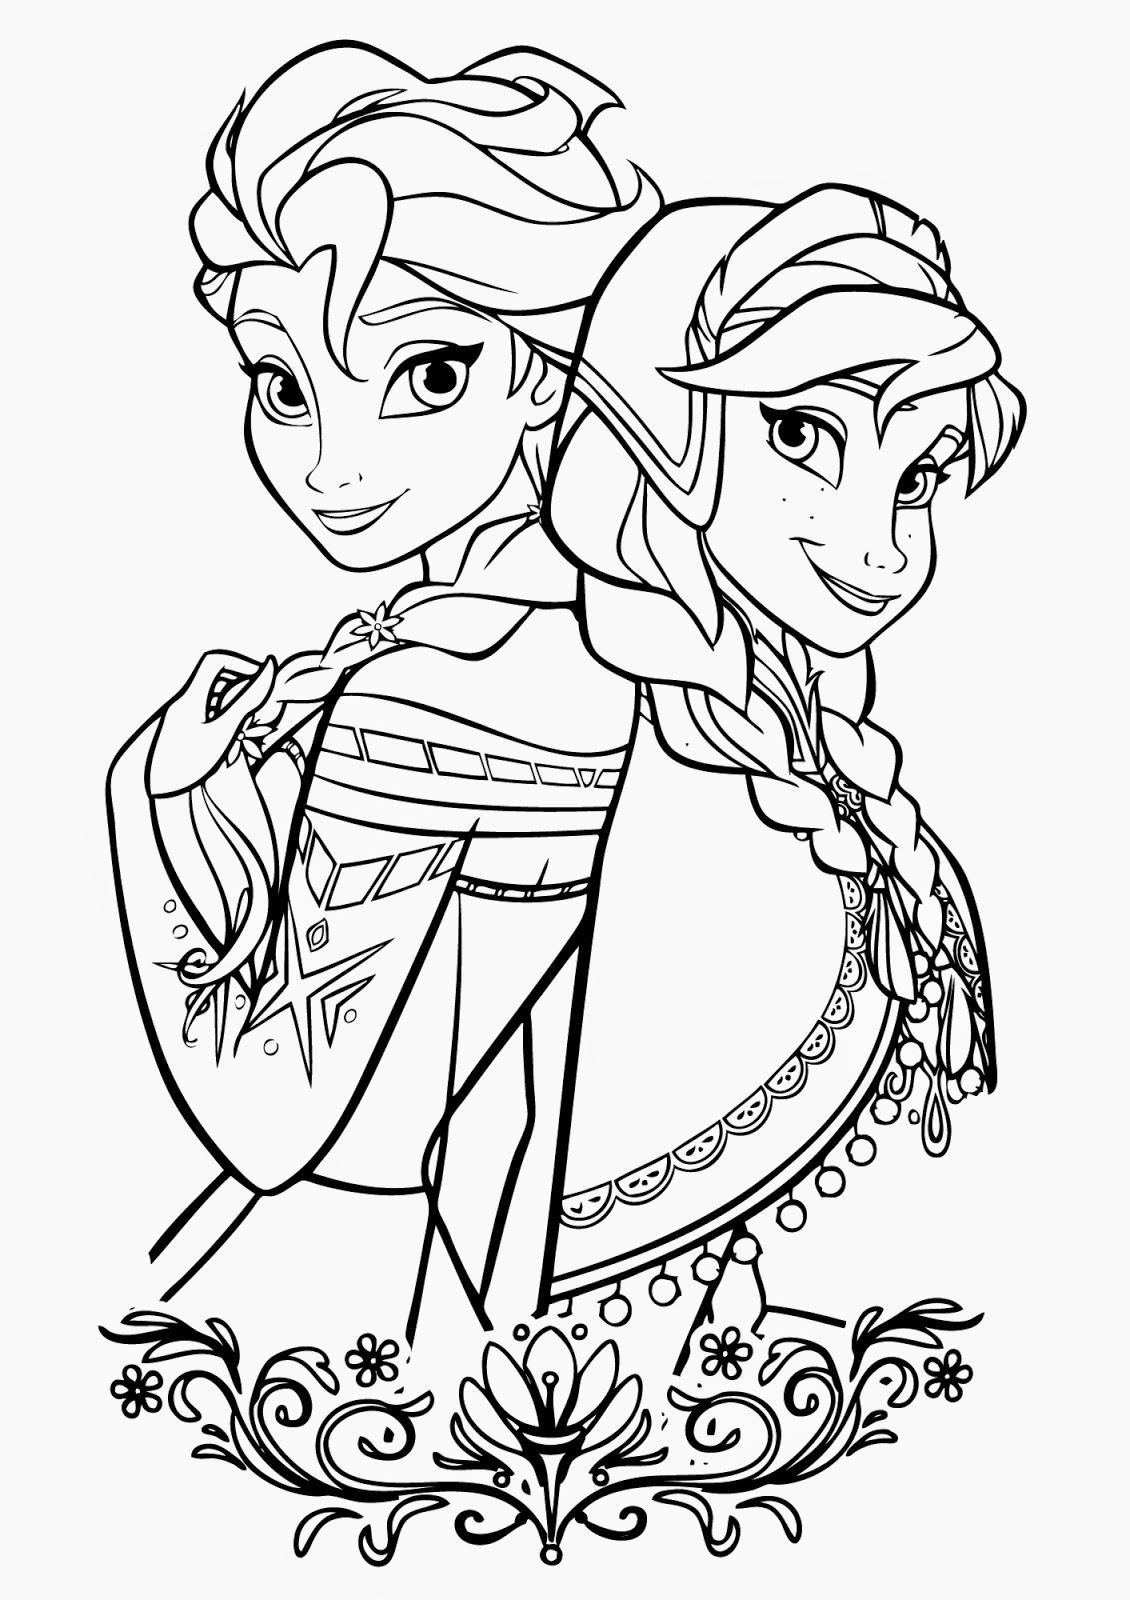 Frozen Elsa Coloring Pages